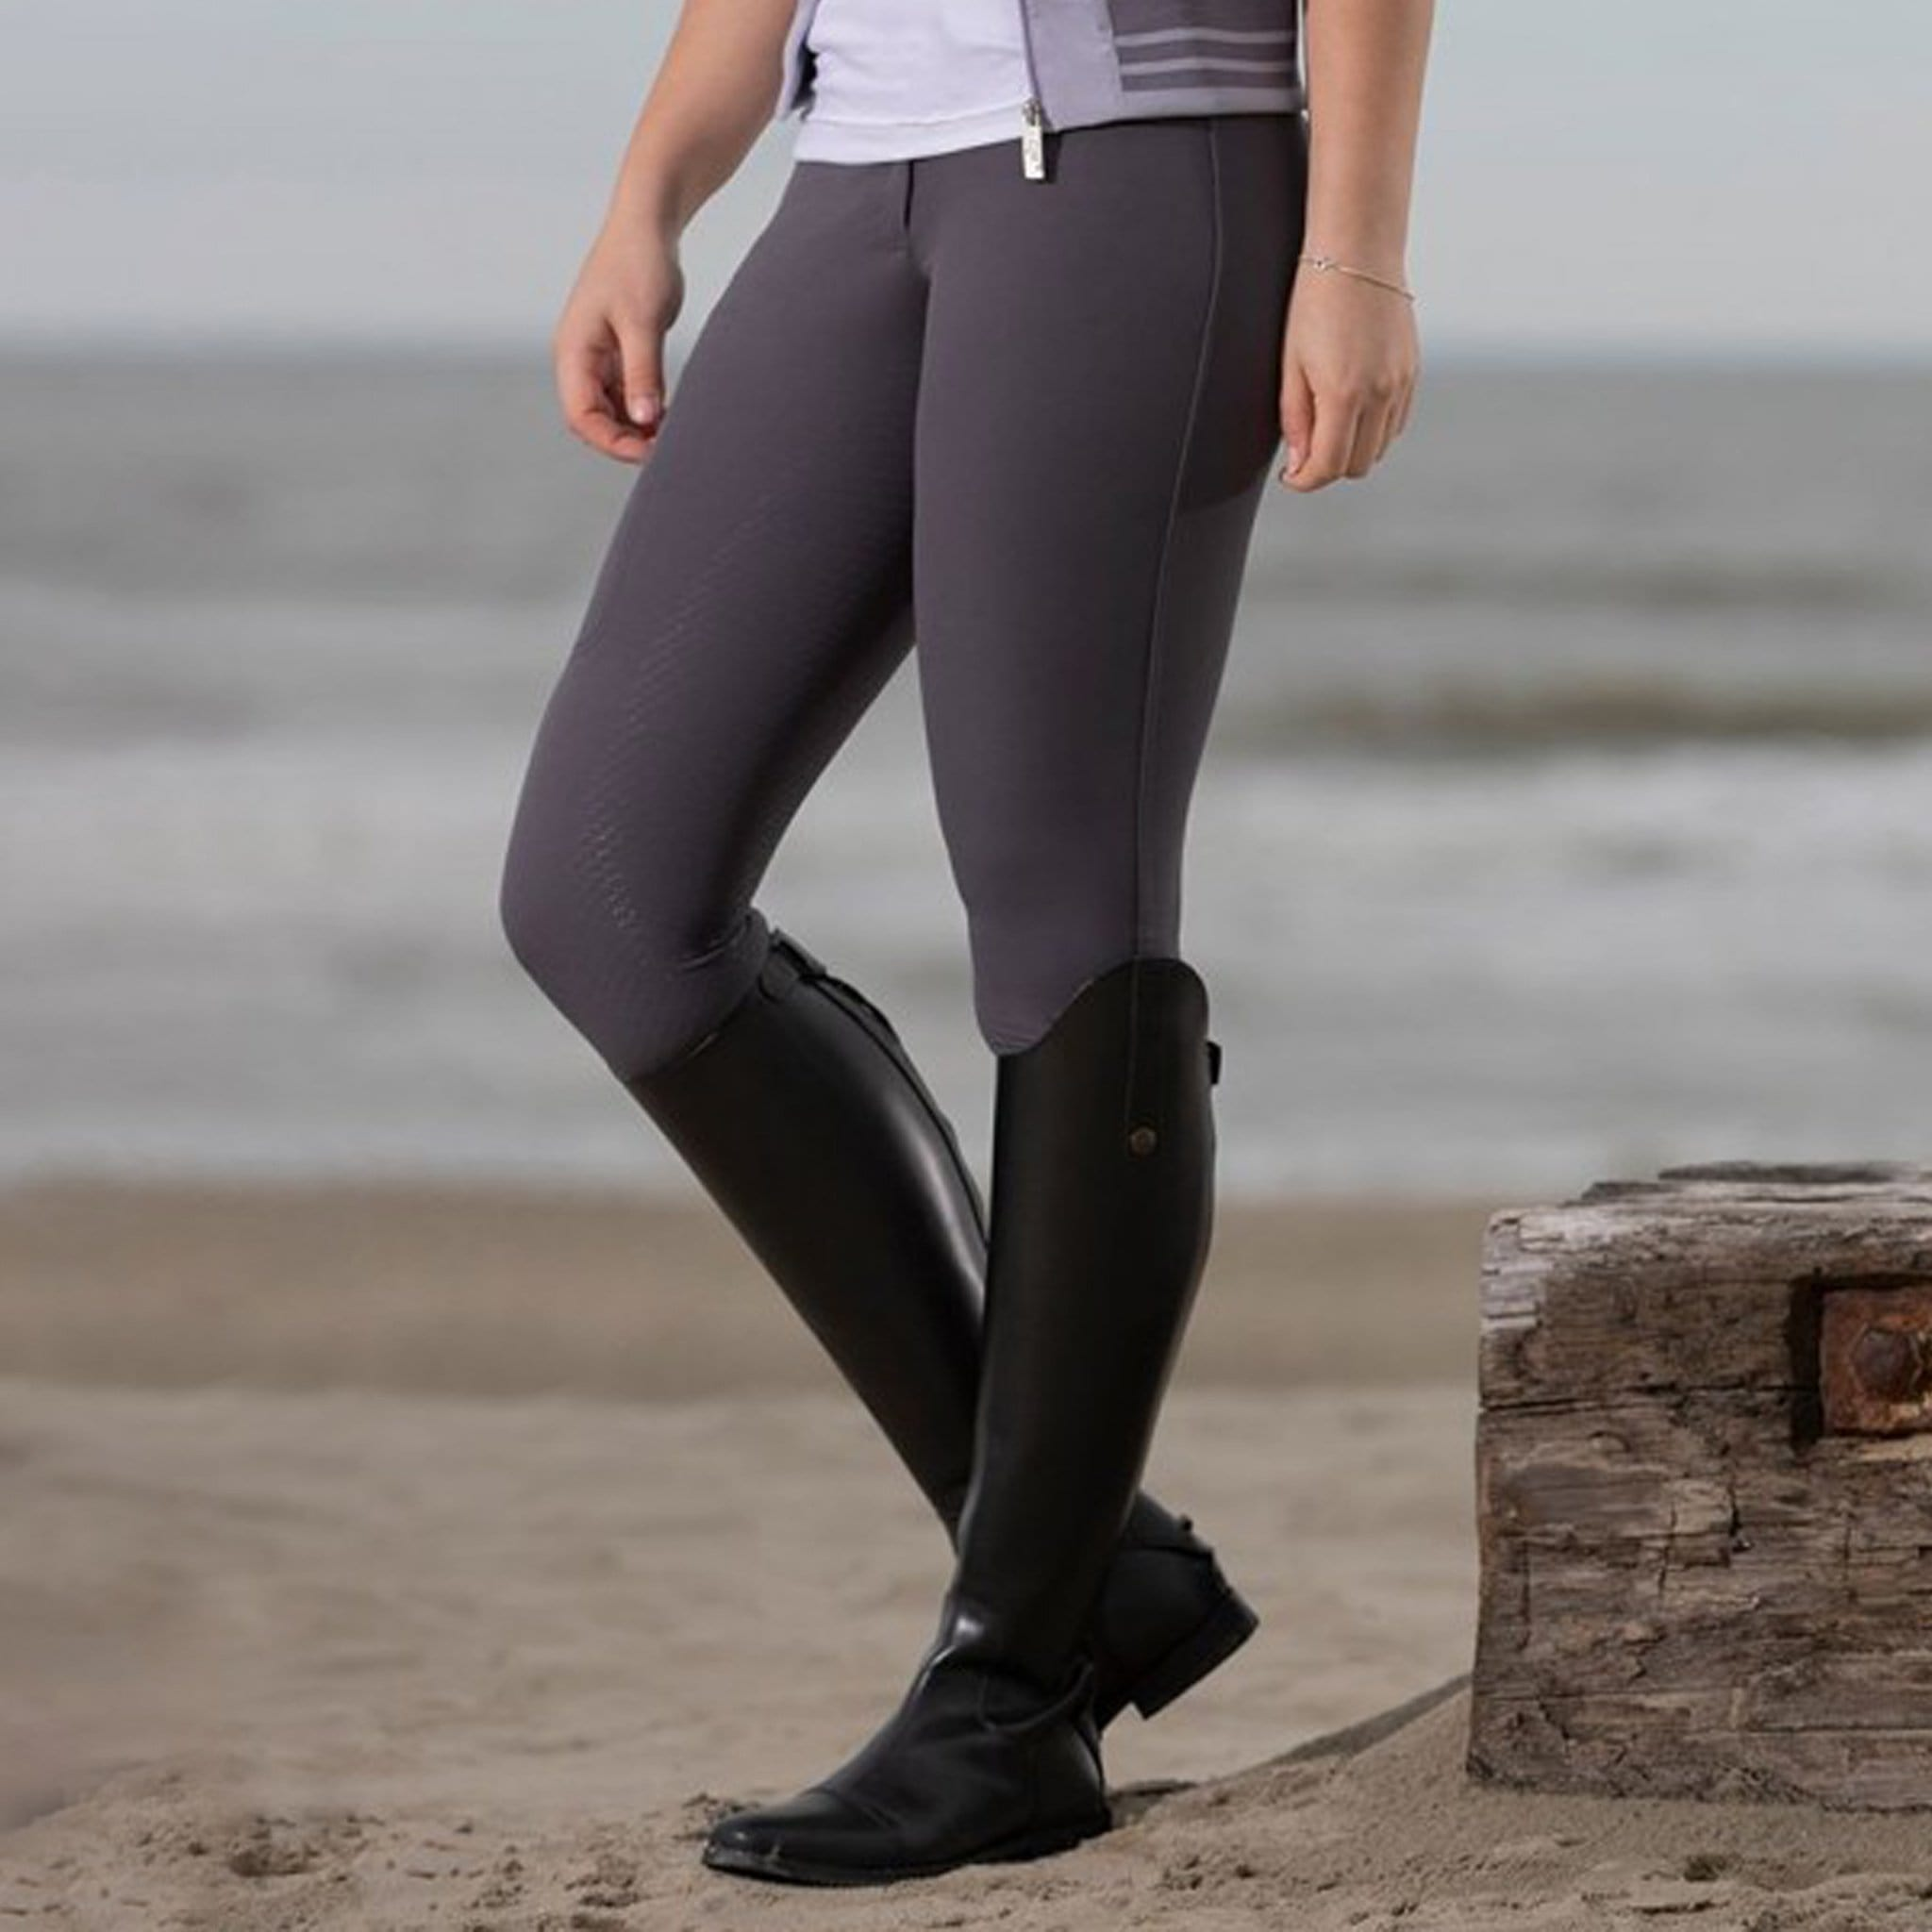 HKM Mondiale Silicone Full Seat Breeches 11323 Dark Blue-Grey On Model SIde